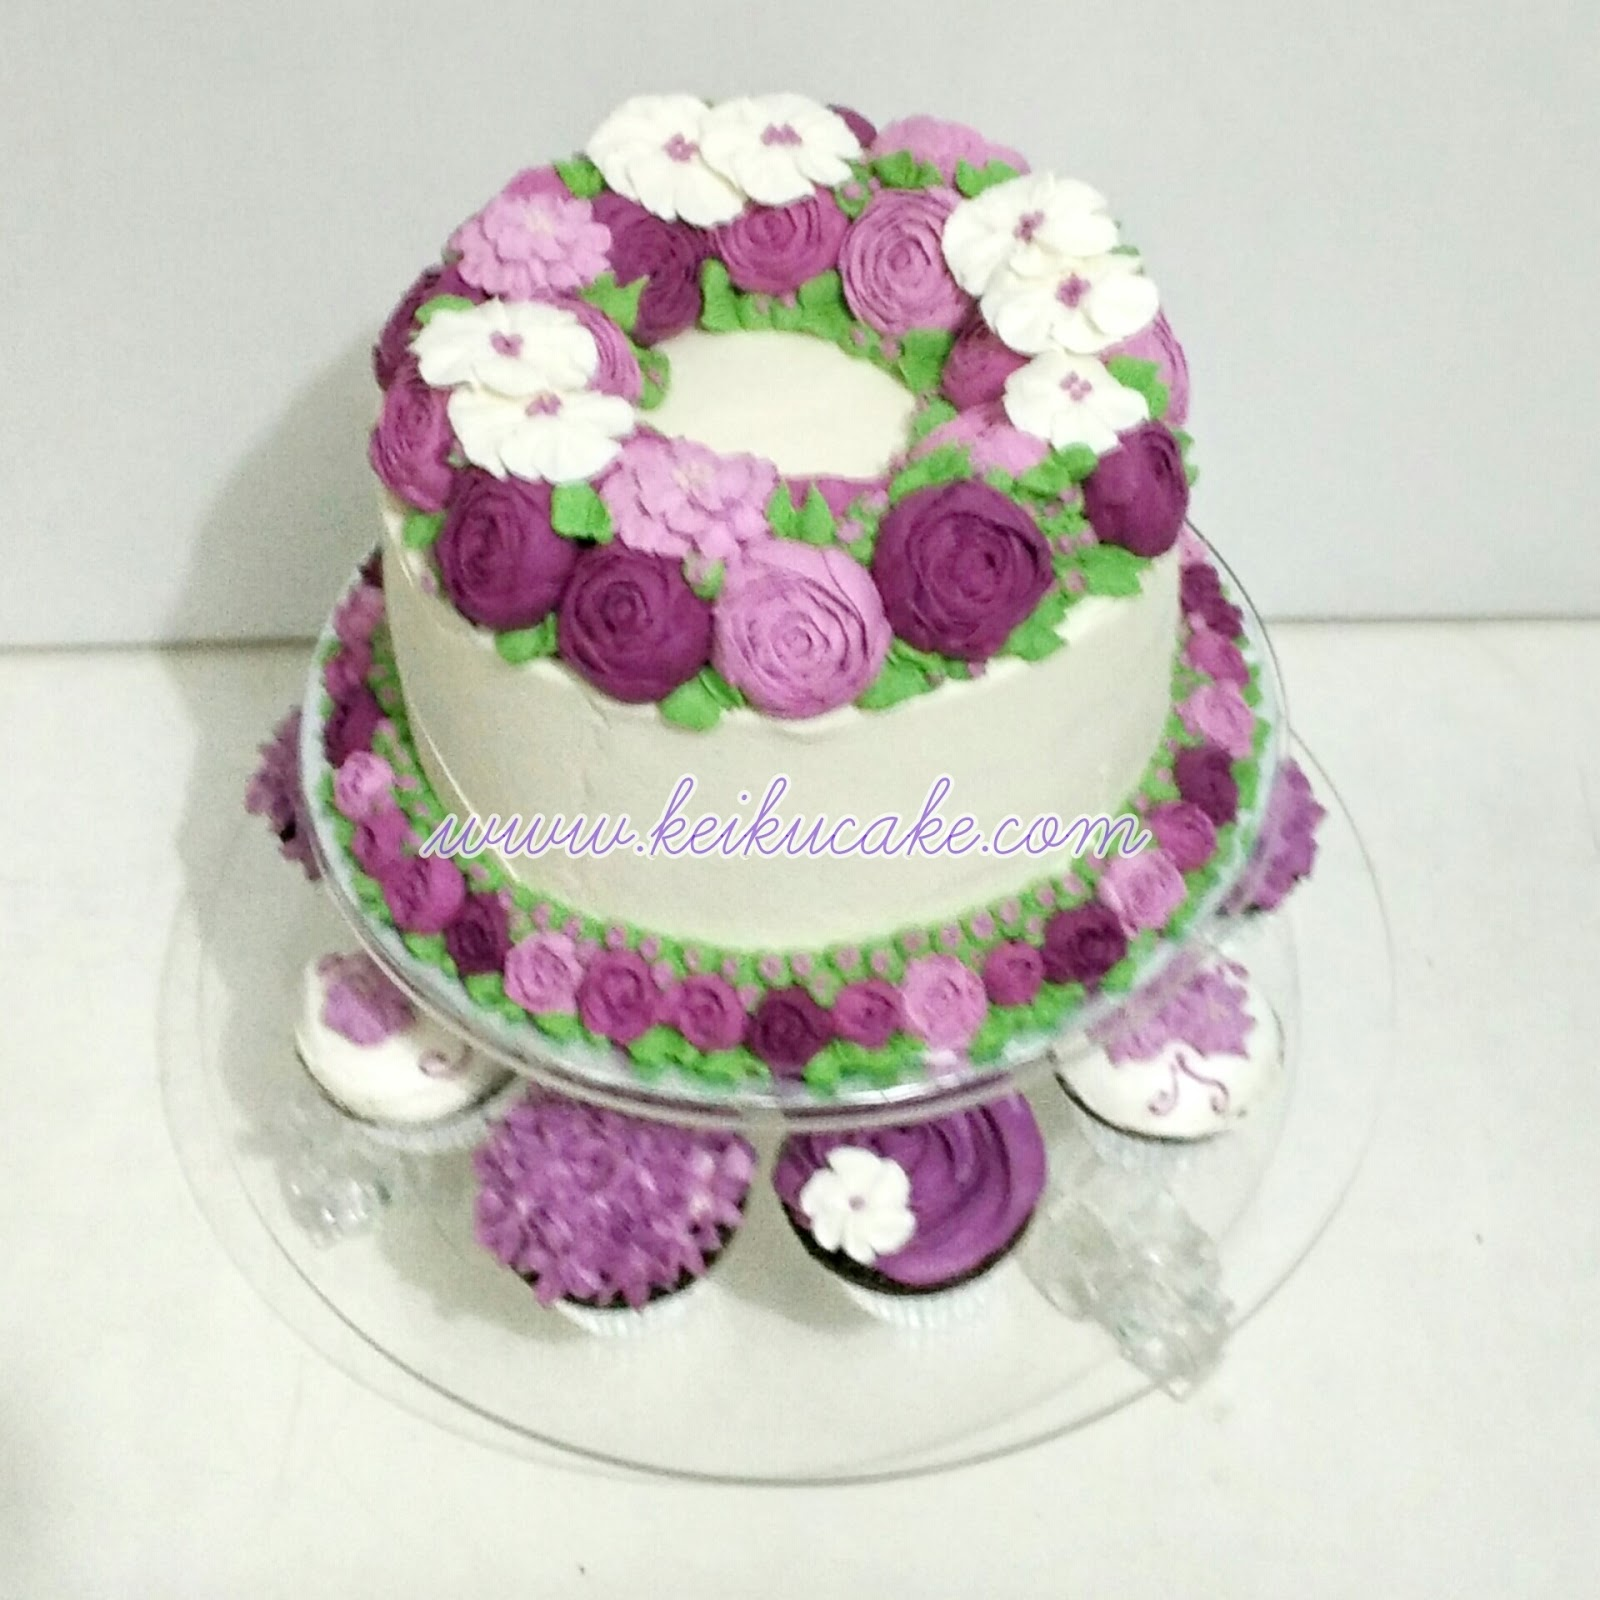 Keiku Cake Purple Wreath Buttercream Flowers Cake